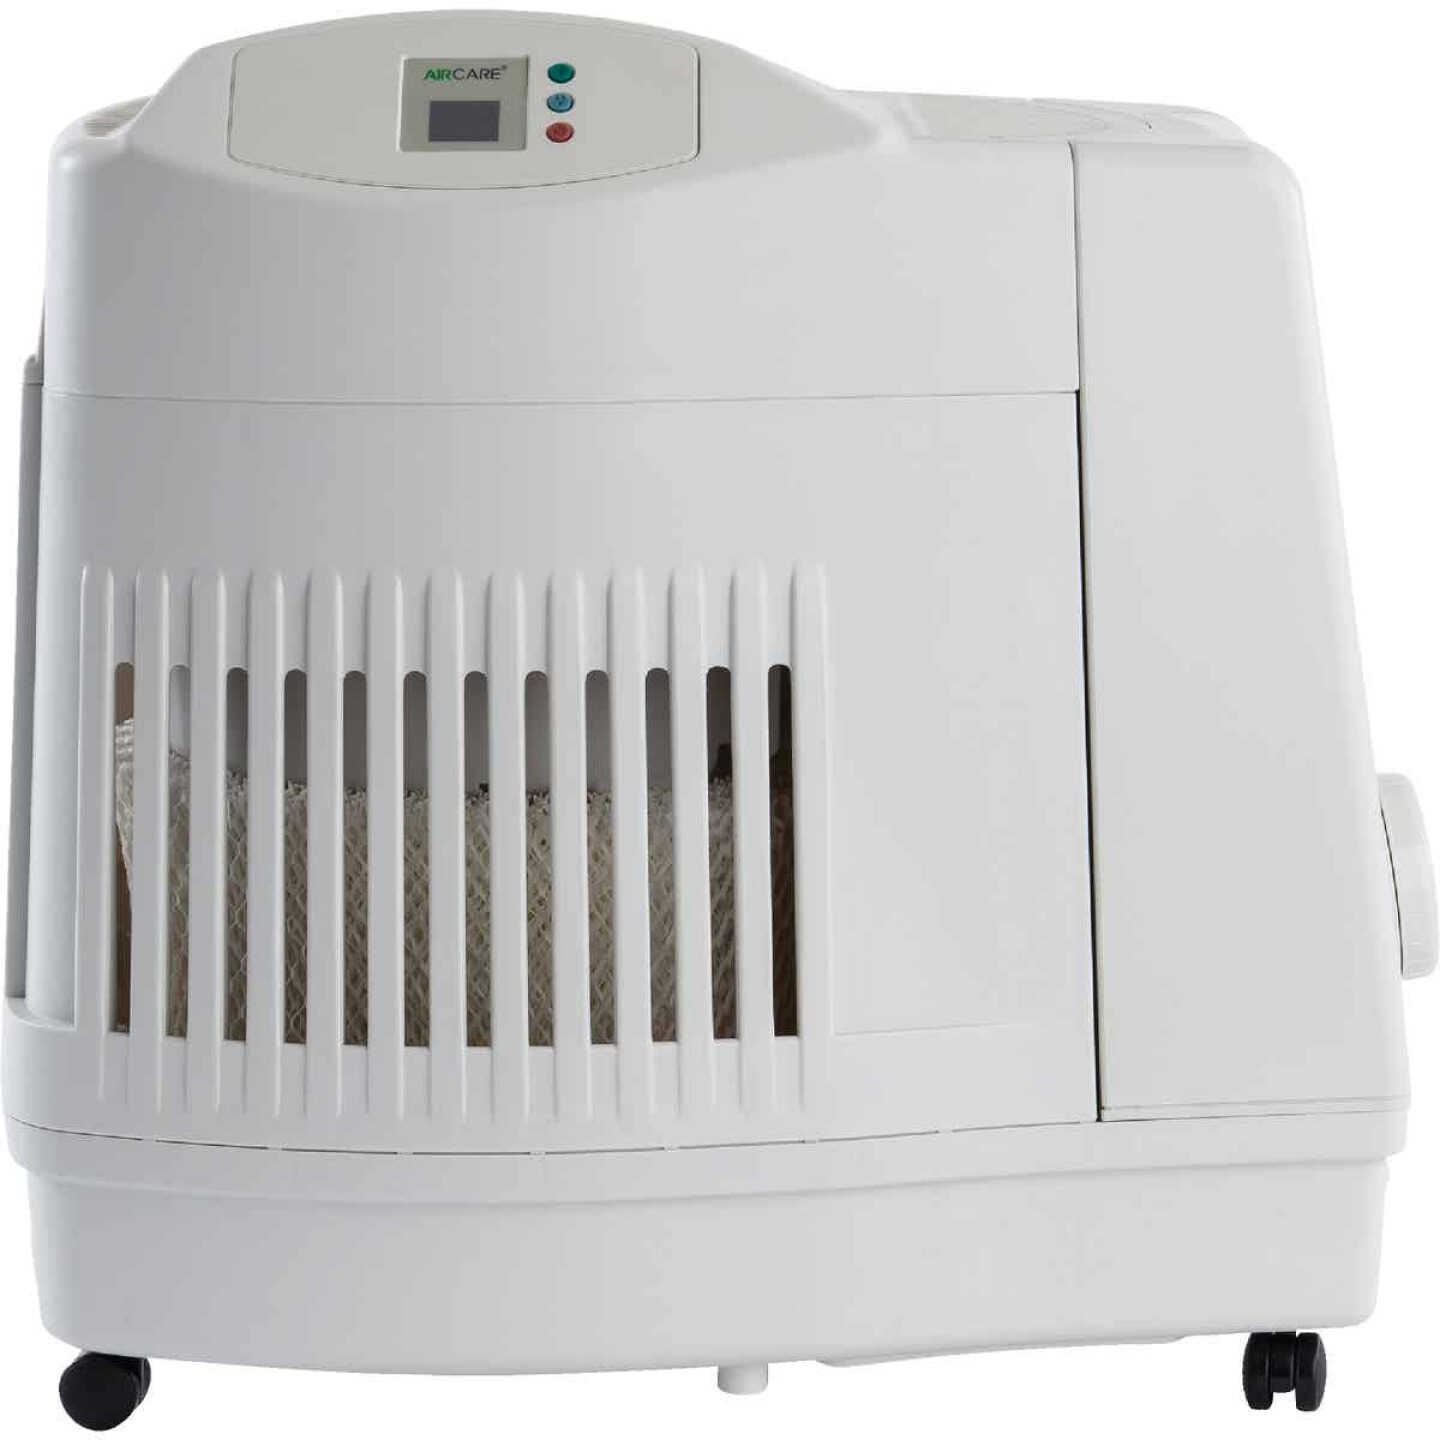 AirCare 3.6 Gal. Capacity 3600 Sq. Ft. Console Evaporative Humidifier Image 2